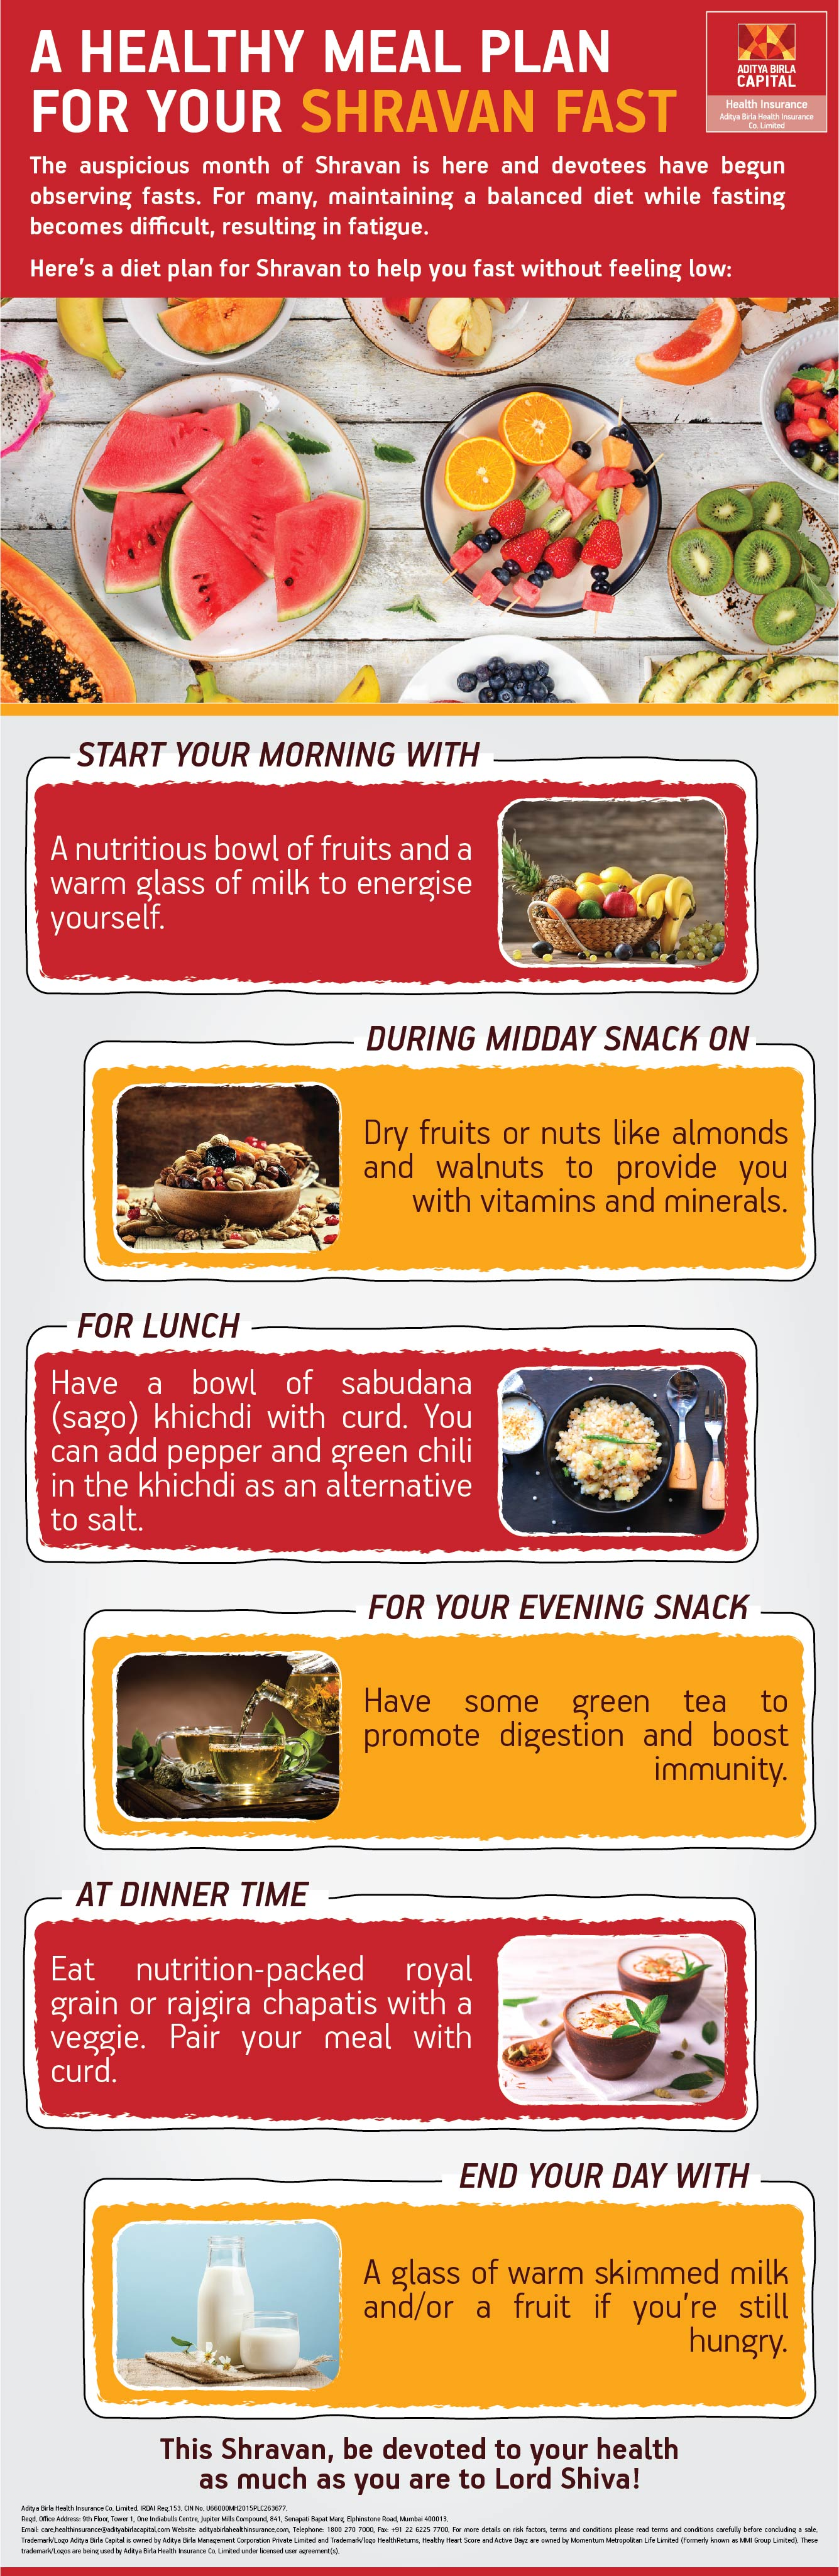 Healthy Meal Plan For Shravan Fast Infographic - Activ Together